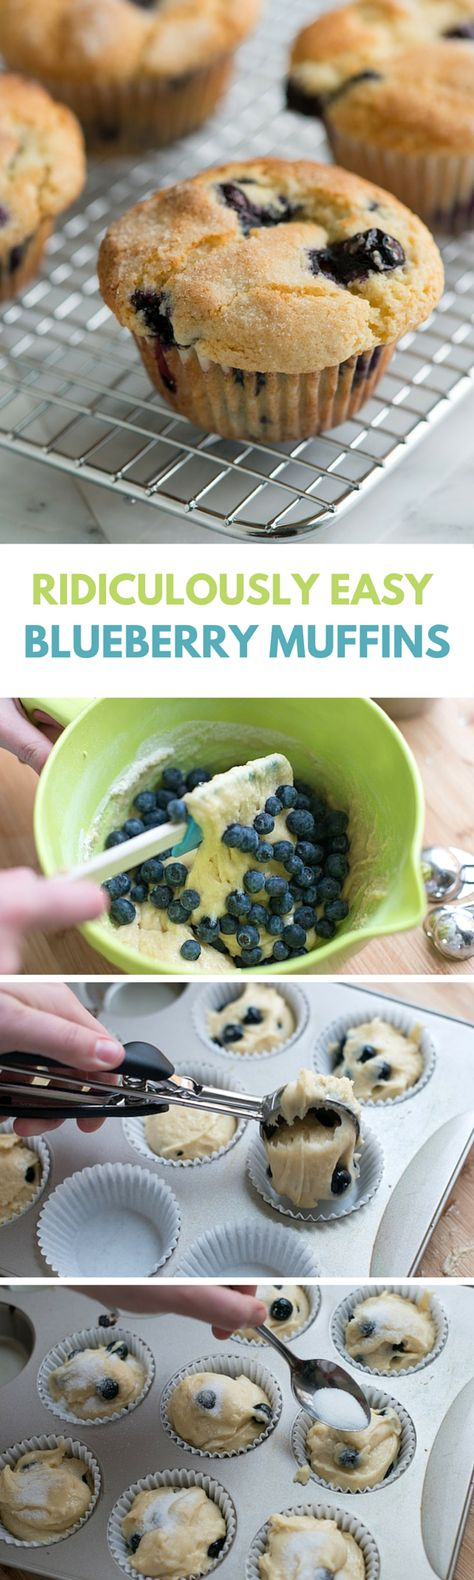 You only need one bowl to make this easy blueberry muffin recipe on inspiredtaste.net with blueberries, flour, sugar, vanilla, and vegetable oil.